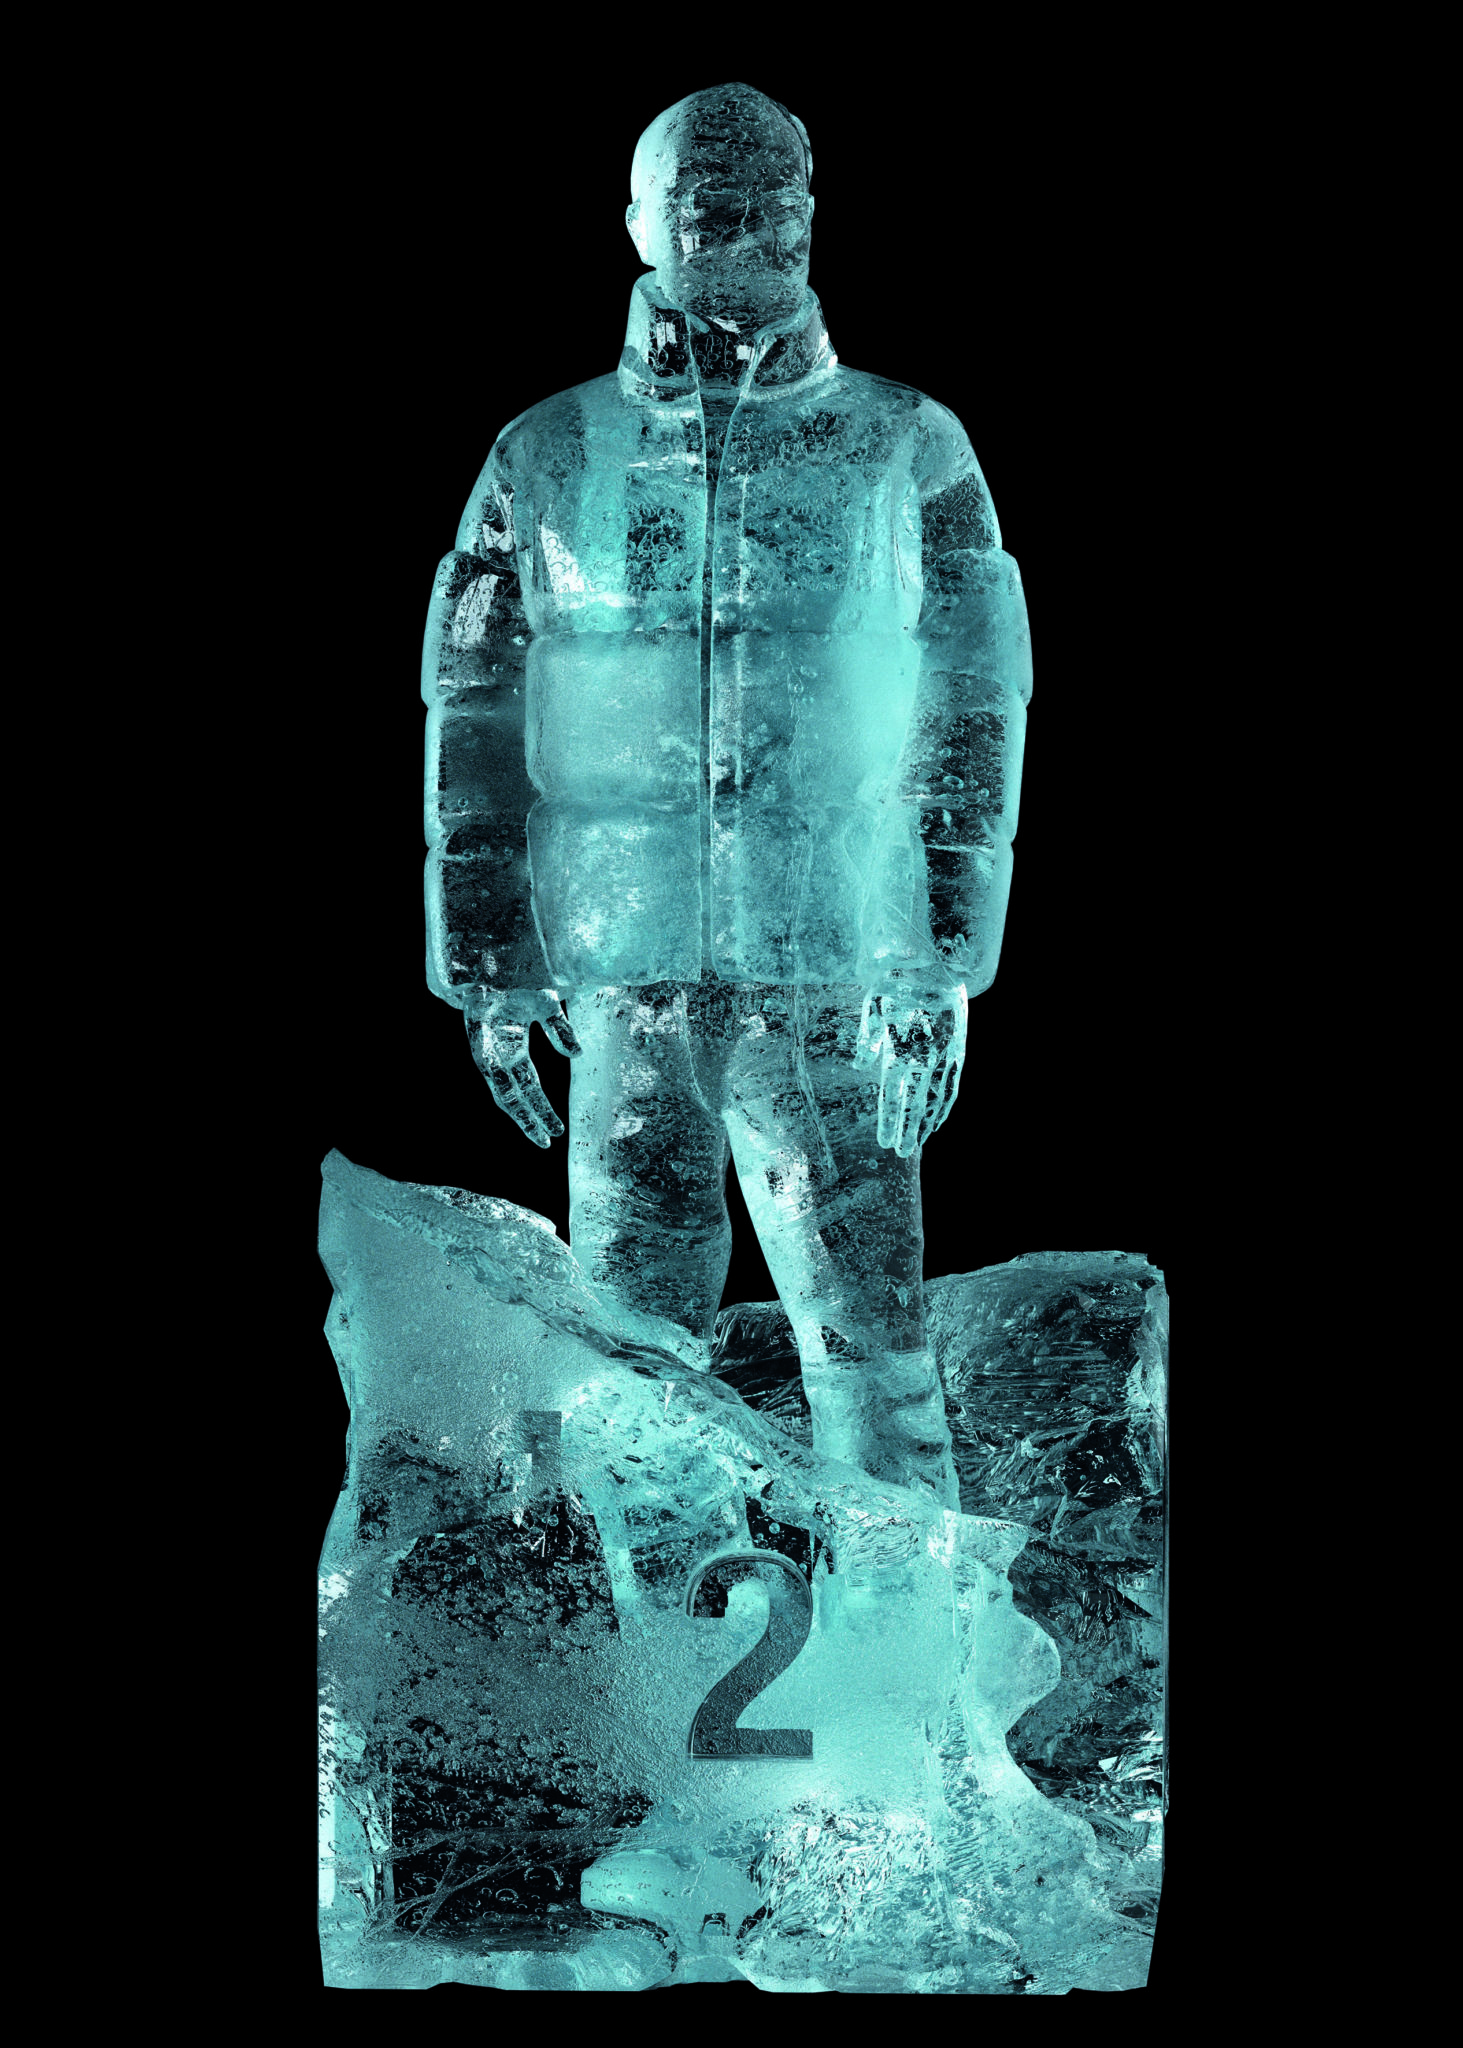 2 MONCLER 1952 - CURATED BY KARL TEMPLER